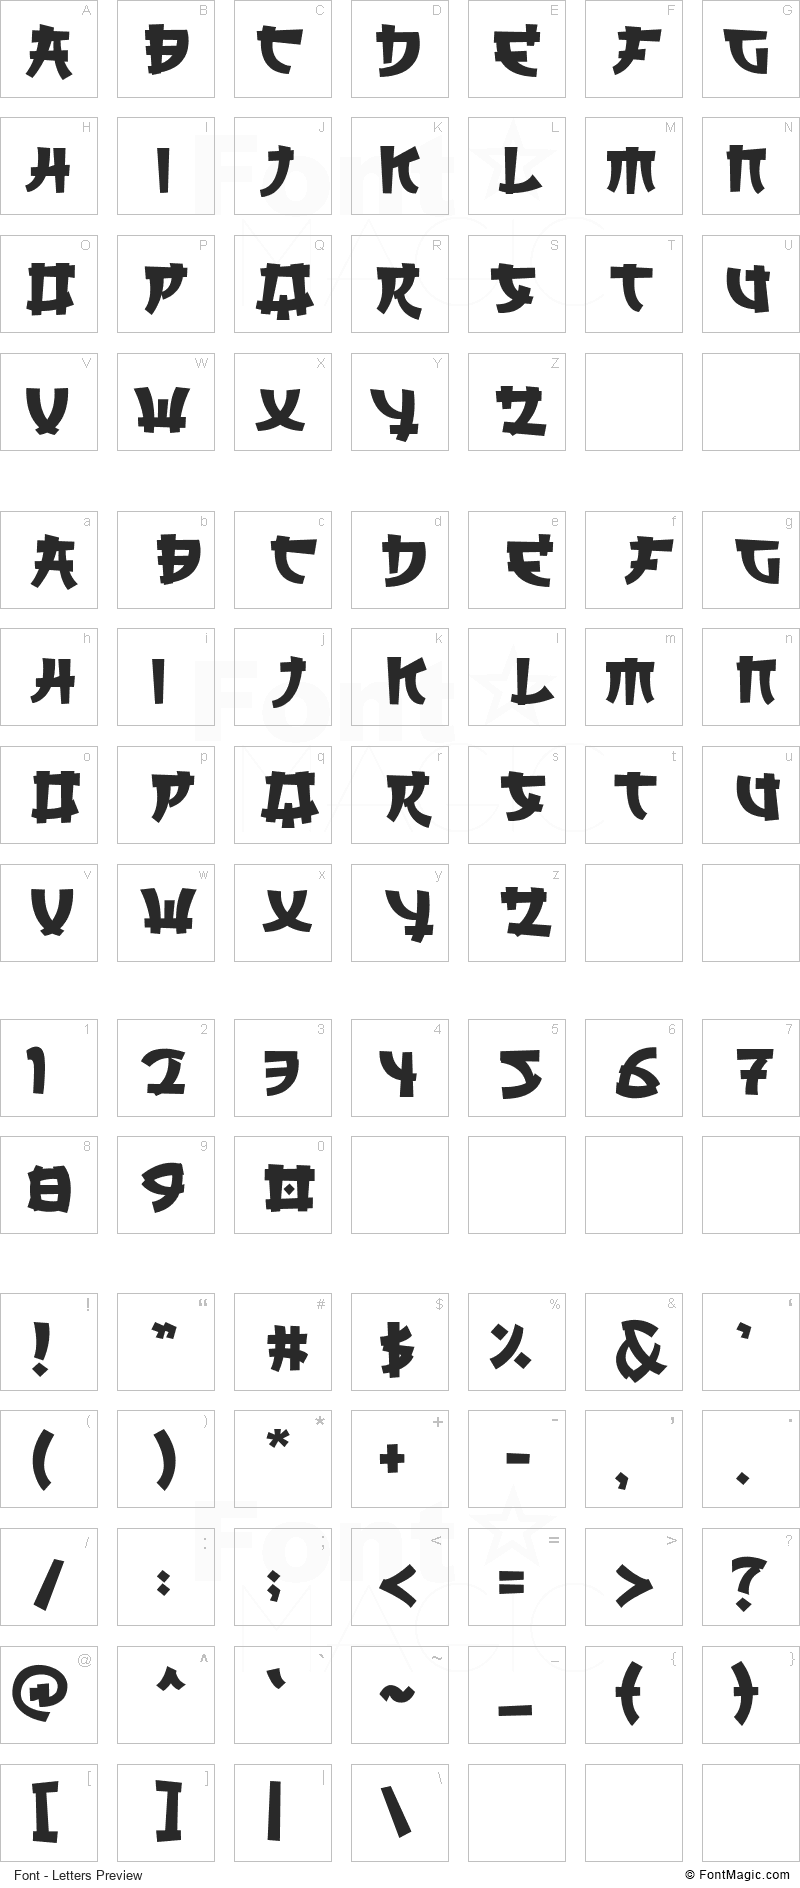 Saikyo Font - All Latters Preview Chart